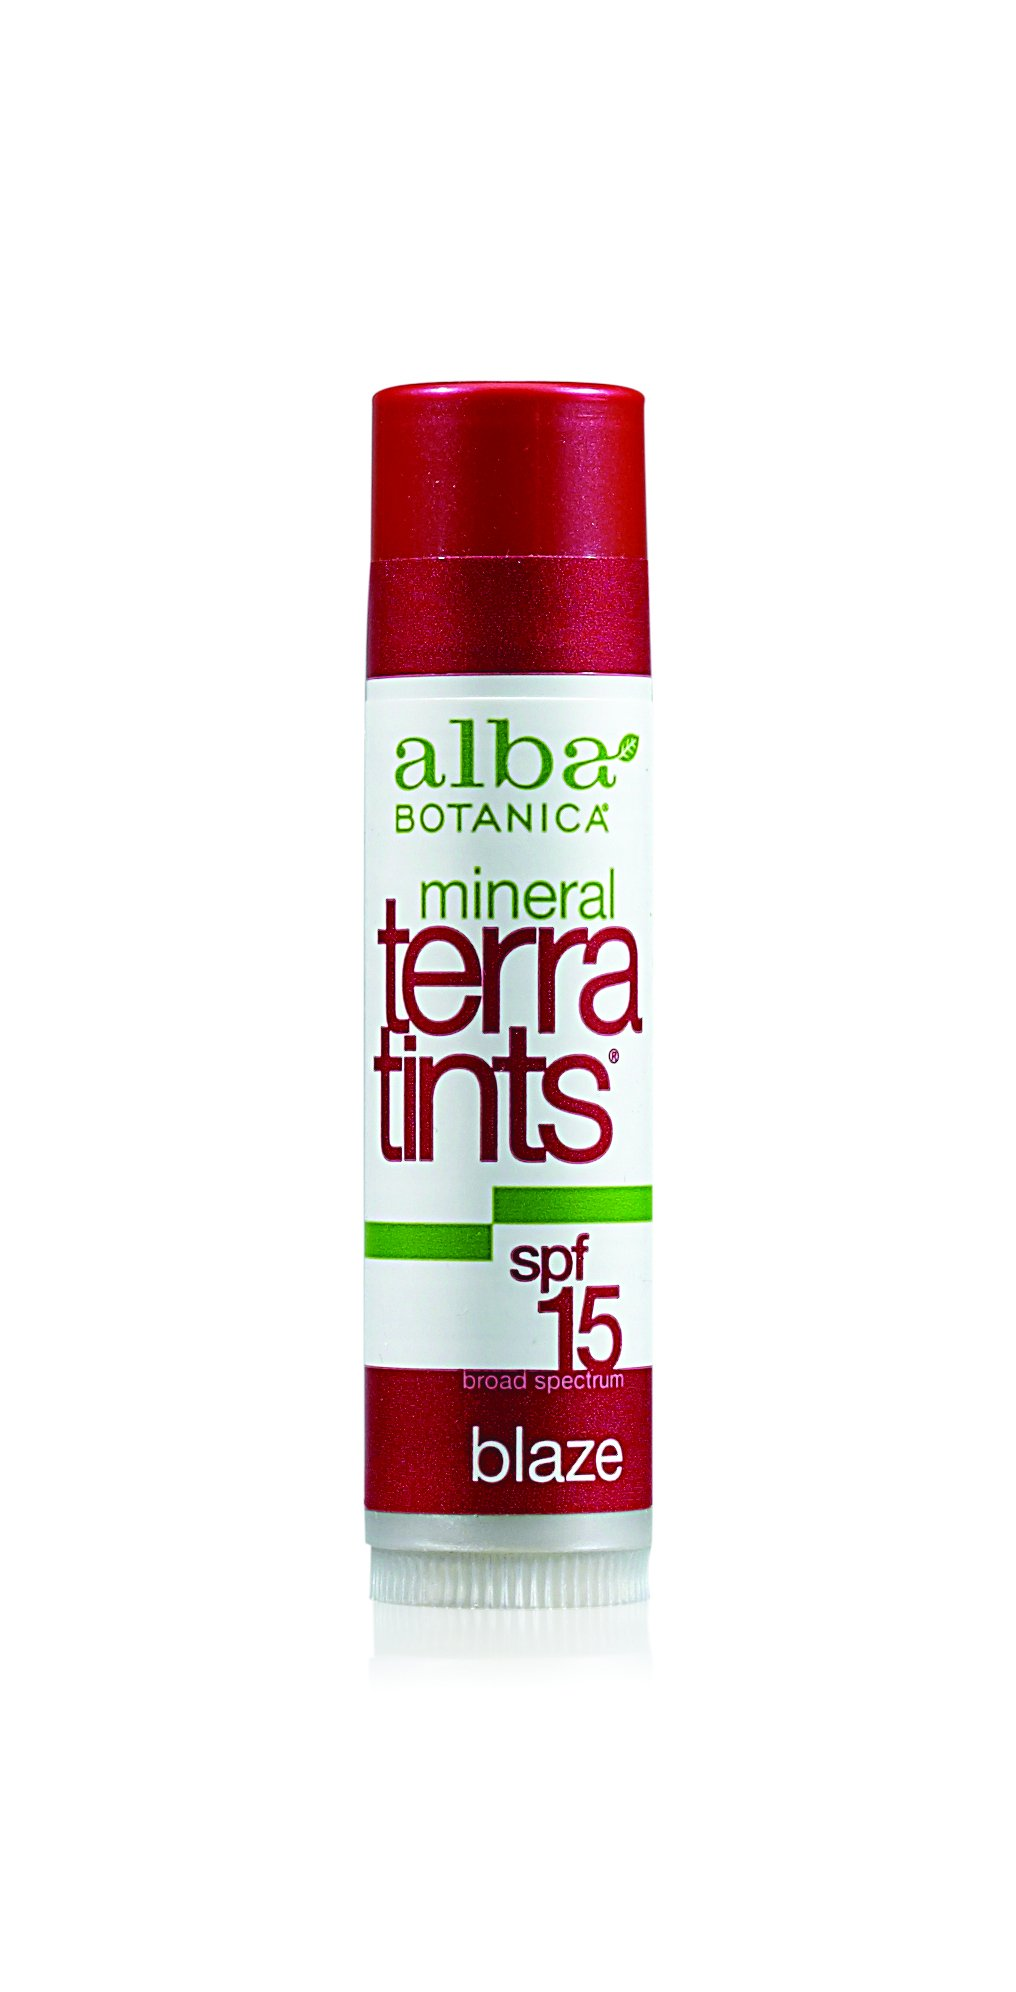 Alba Botanica Mineral Terra Tints Lip Balm, Bloom SPF 15 0.15 oz (Pack of 2) Lancome Men Renergy 3D Lifting Anti-Wrinkle Firming Cream, 1.69 Oz